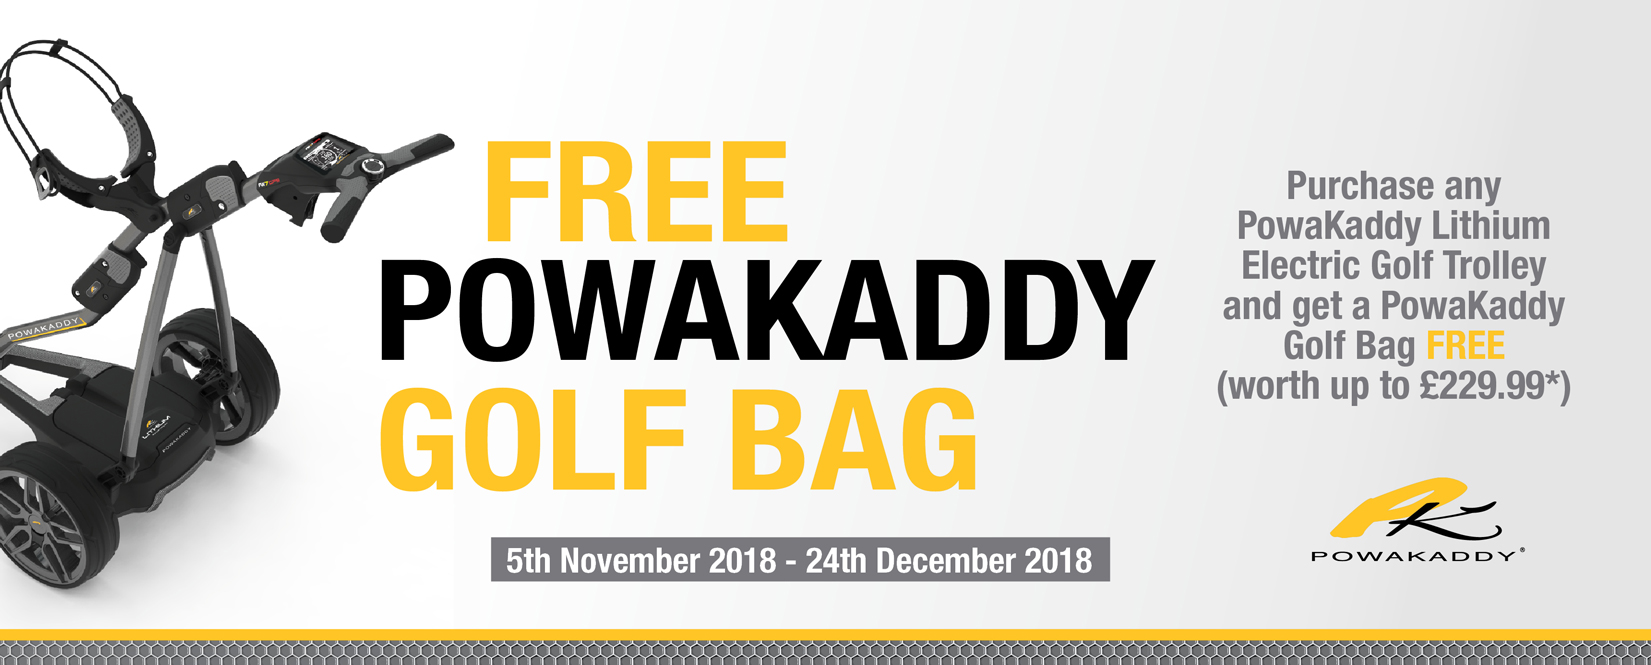 Powakaddy free bag deal 2018